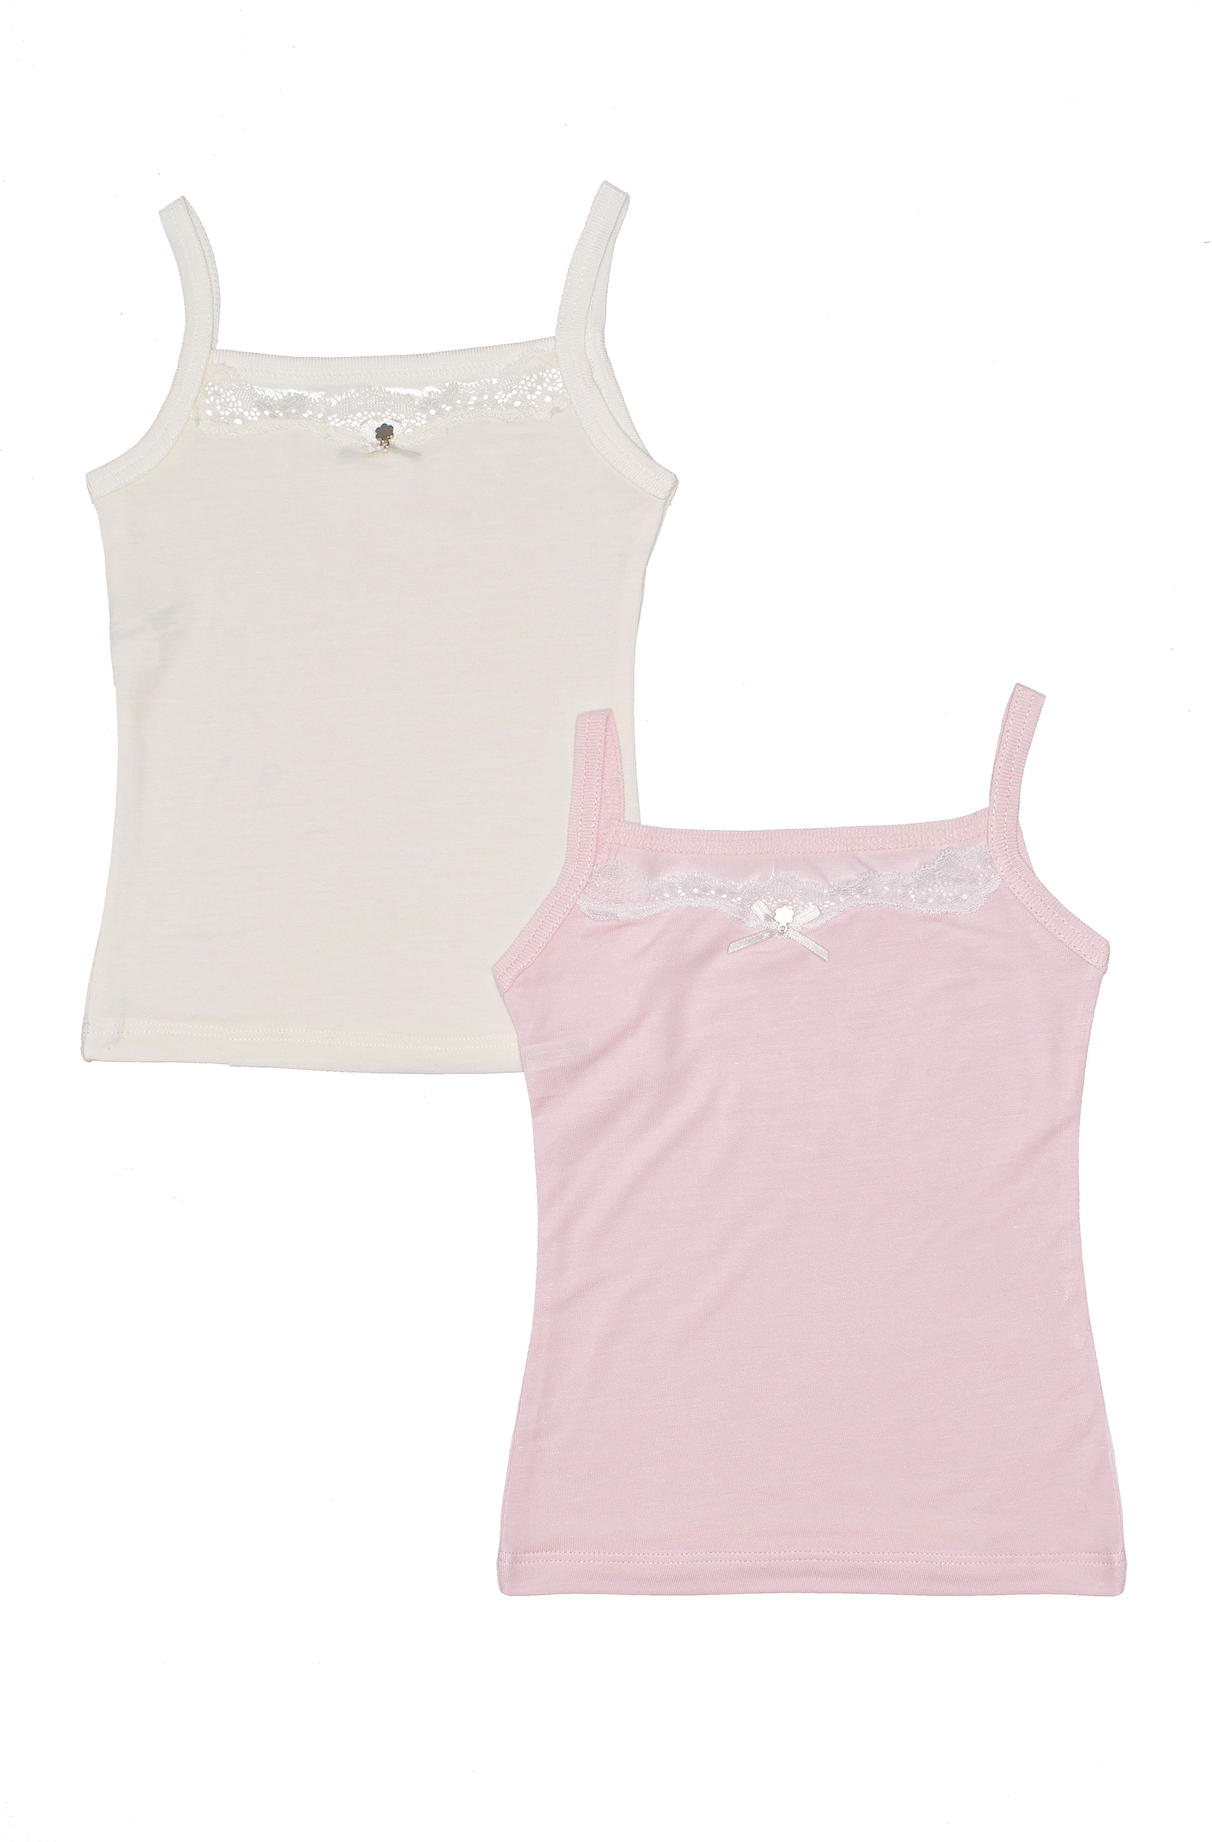 Lace Trim Camisole, 2-pack